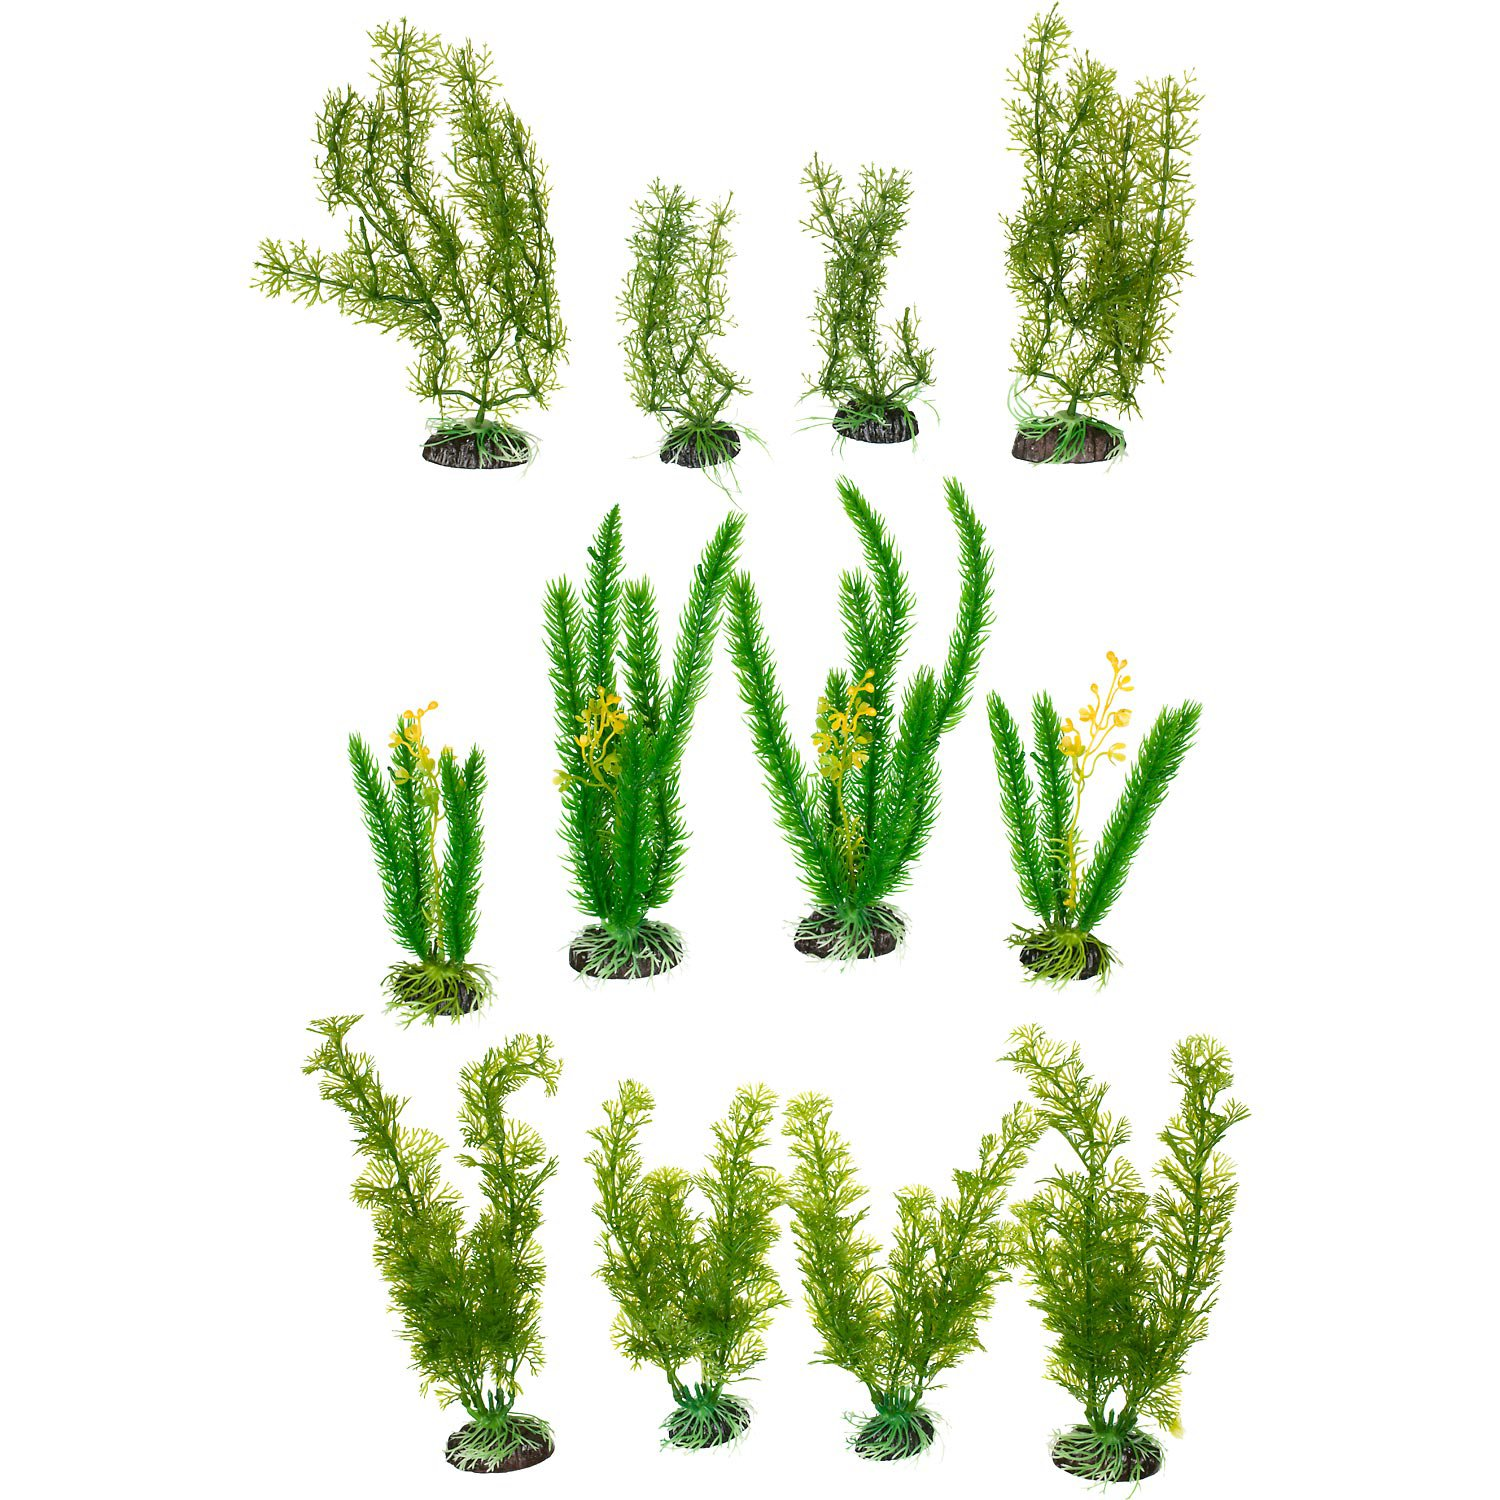 Image Result For Cleaning Silk Plants